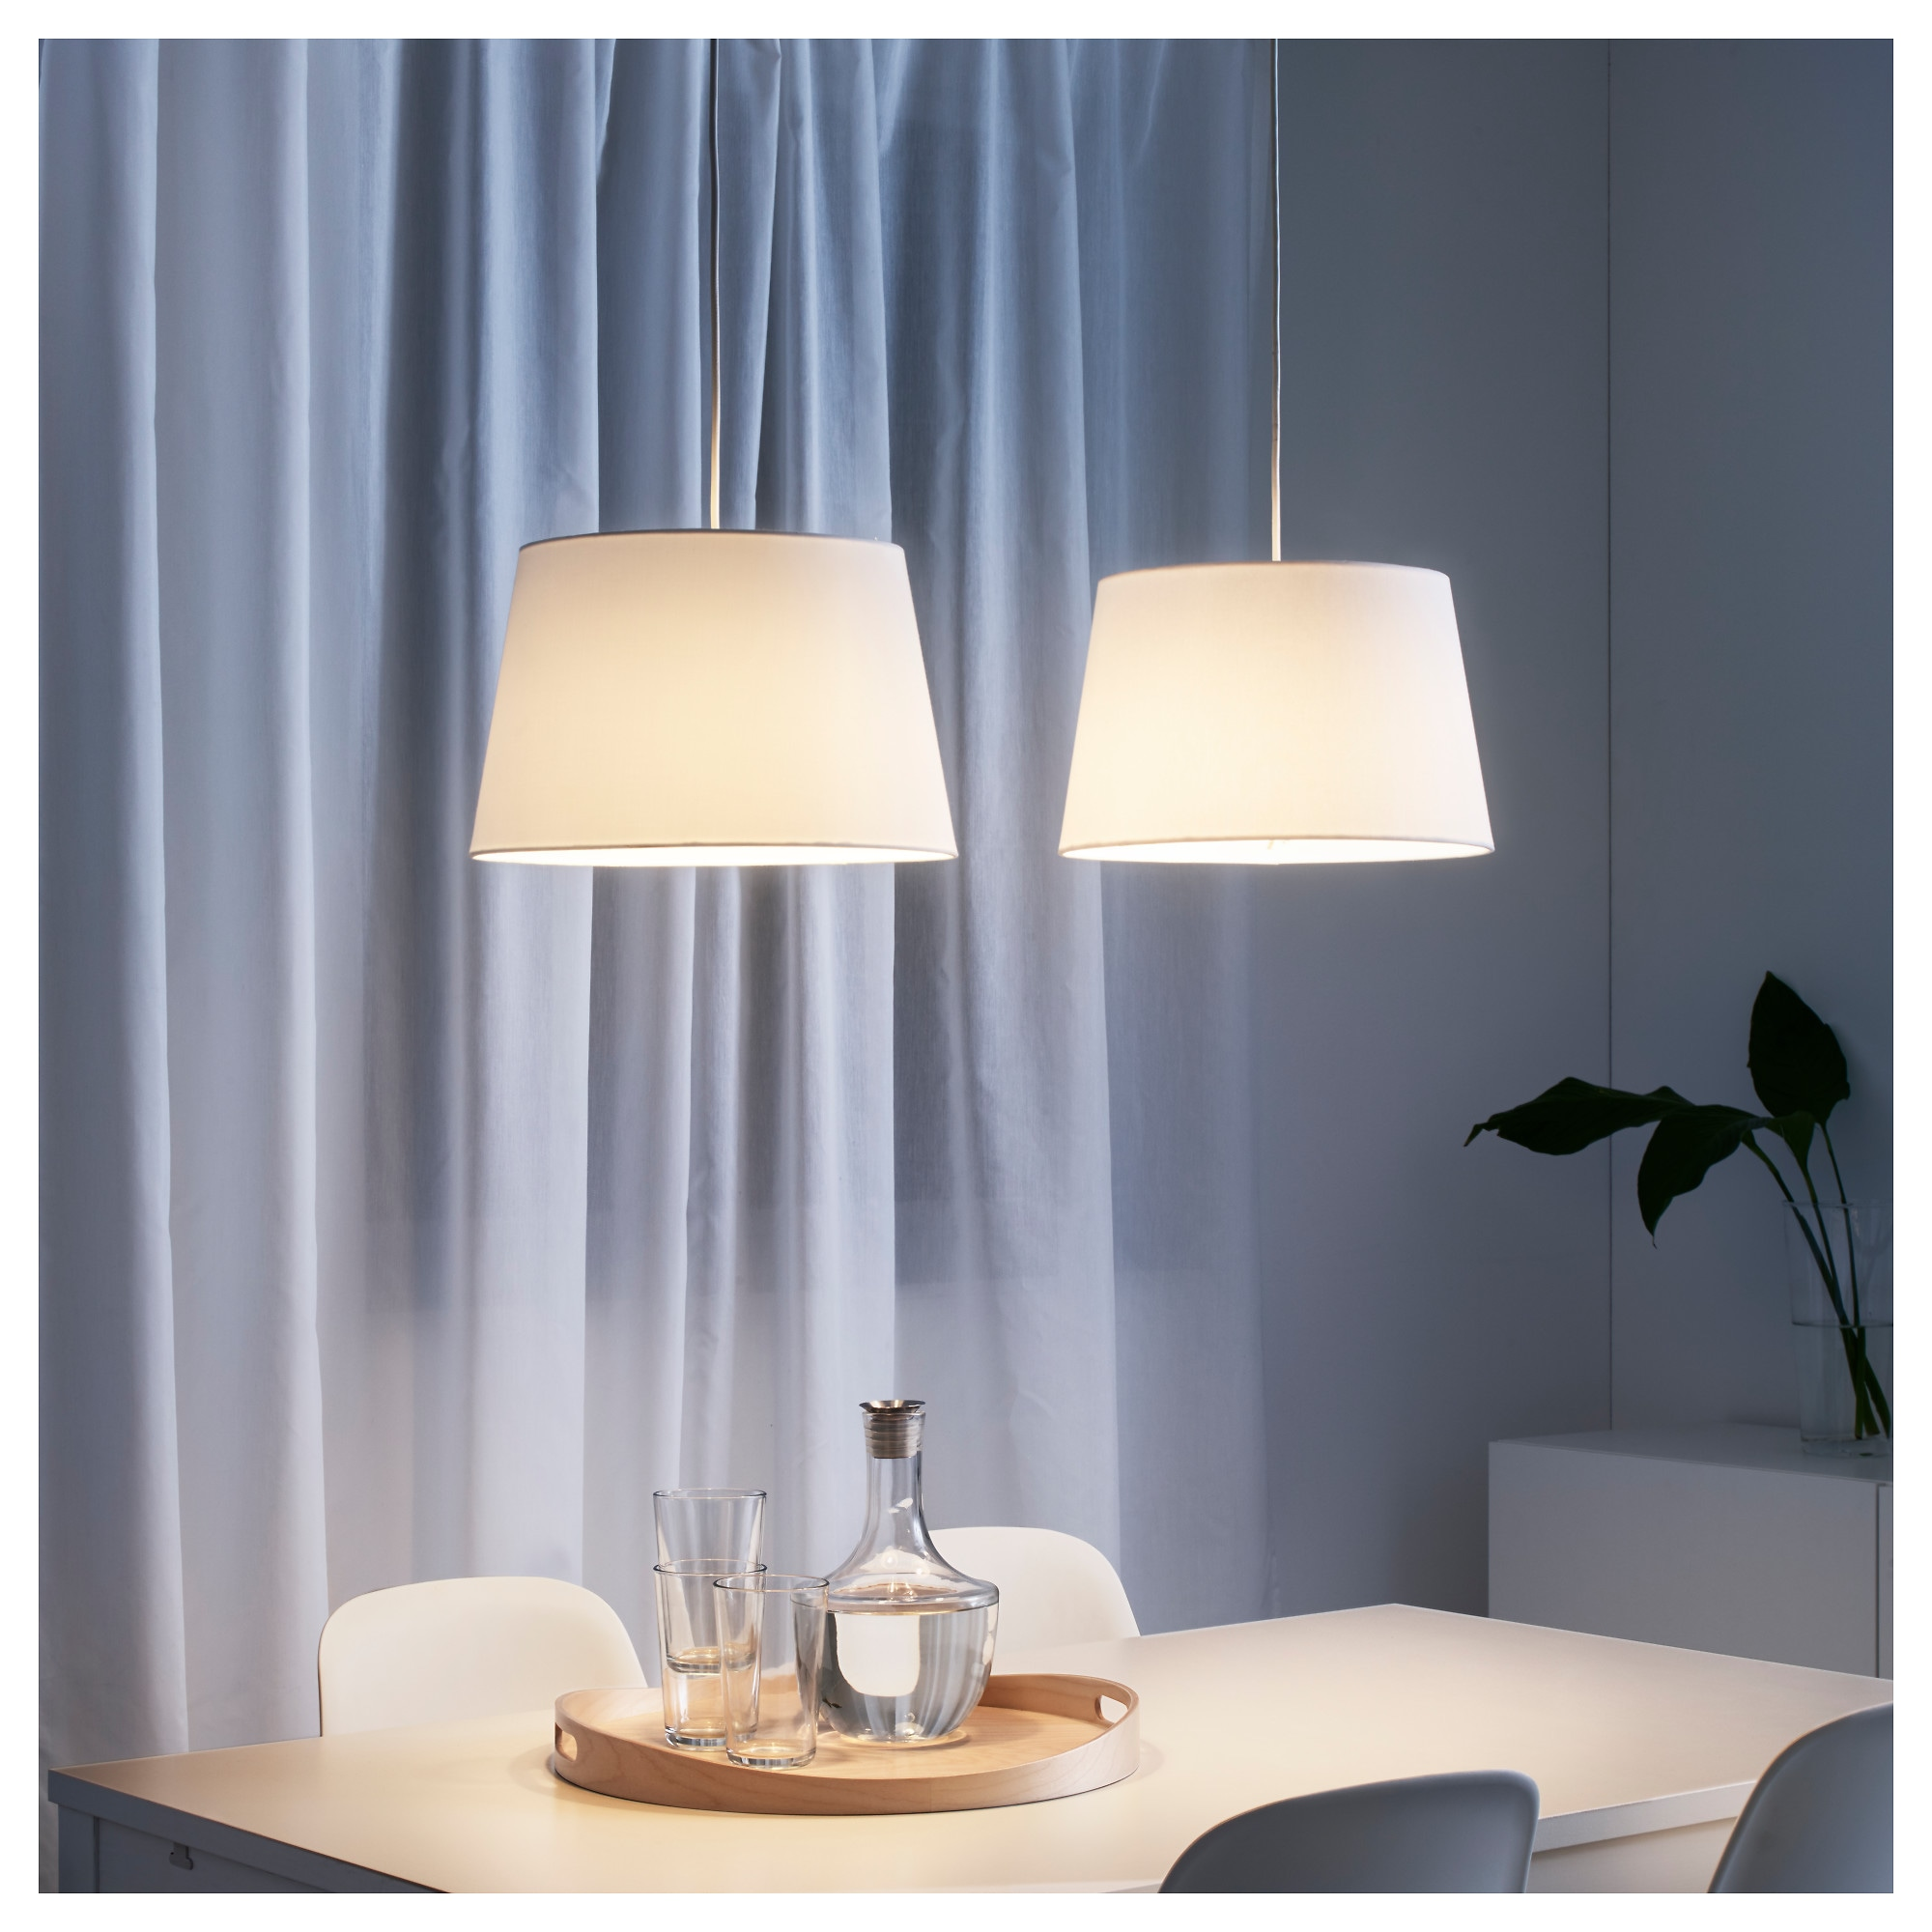 Jra lamp shade 17 ikea mozeypictures Image collections